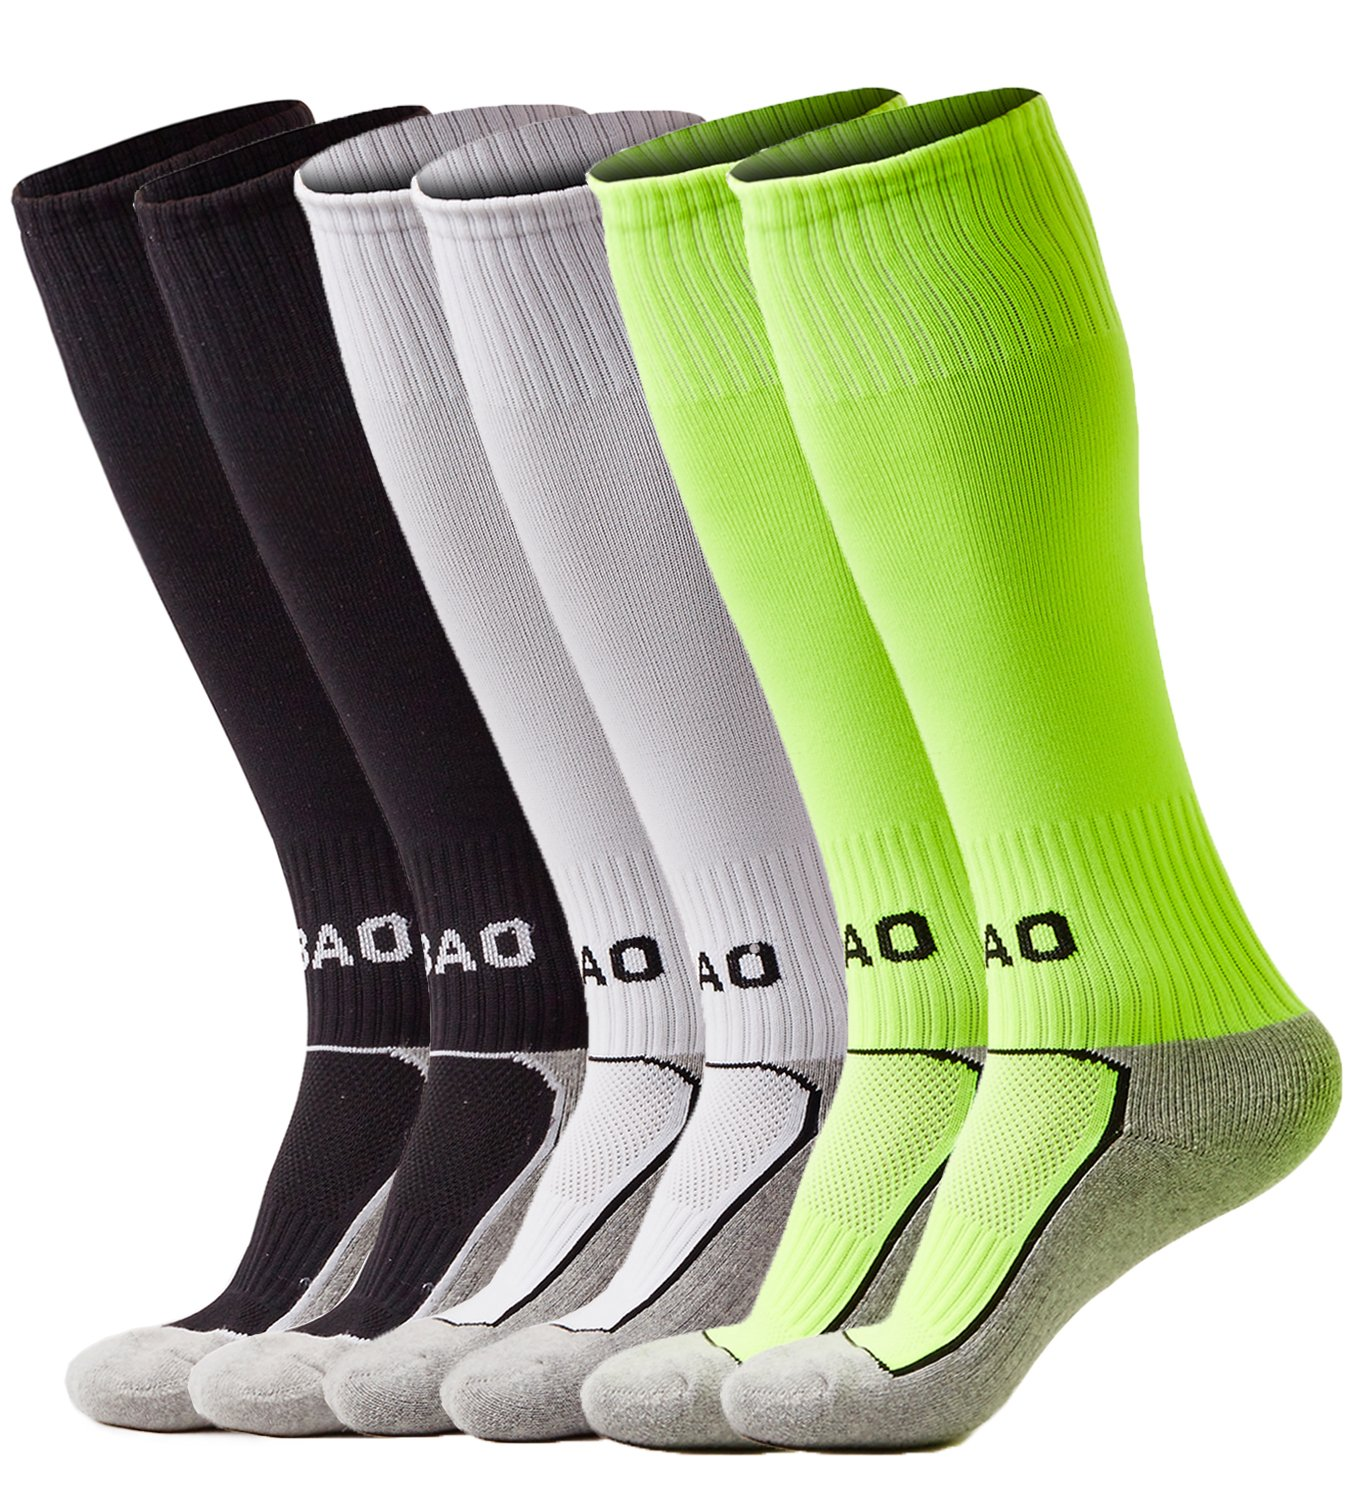 laventoボーイズ/ガールズクッションover the calf Soccer Socks B07BGV3PV8 M (Youth's shoes size 2Y-6)|3 Pack-Black/White/Neon green 3 Pack-Black/White/Neon green M (Youth's shoes size 2Y-6)